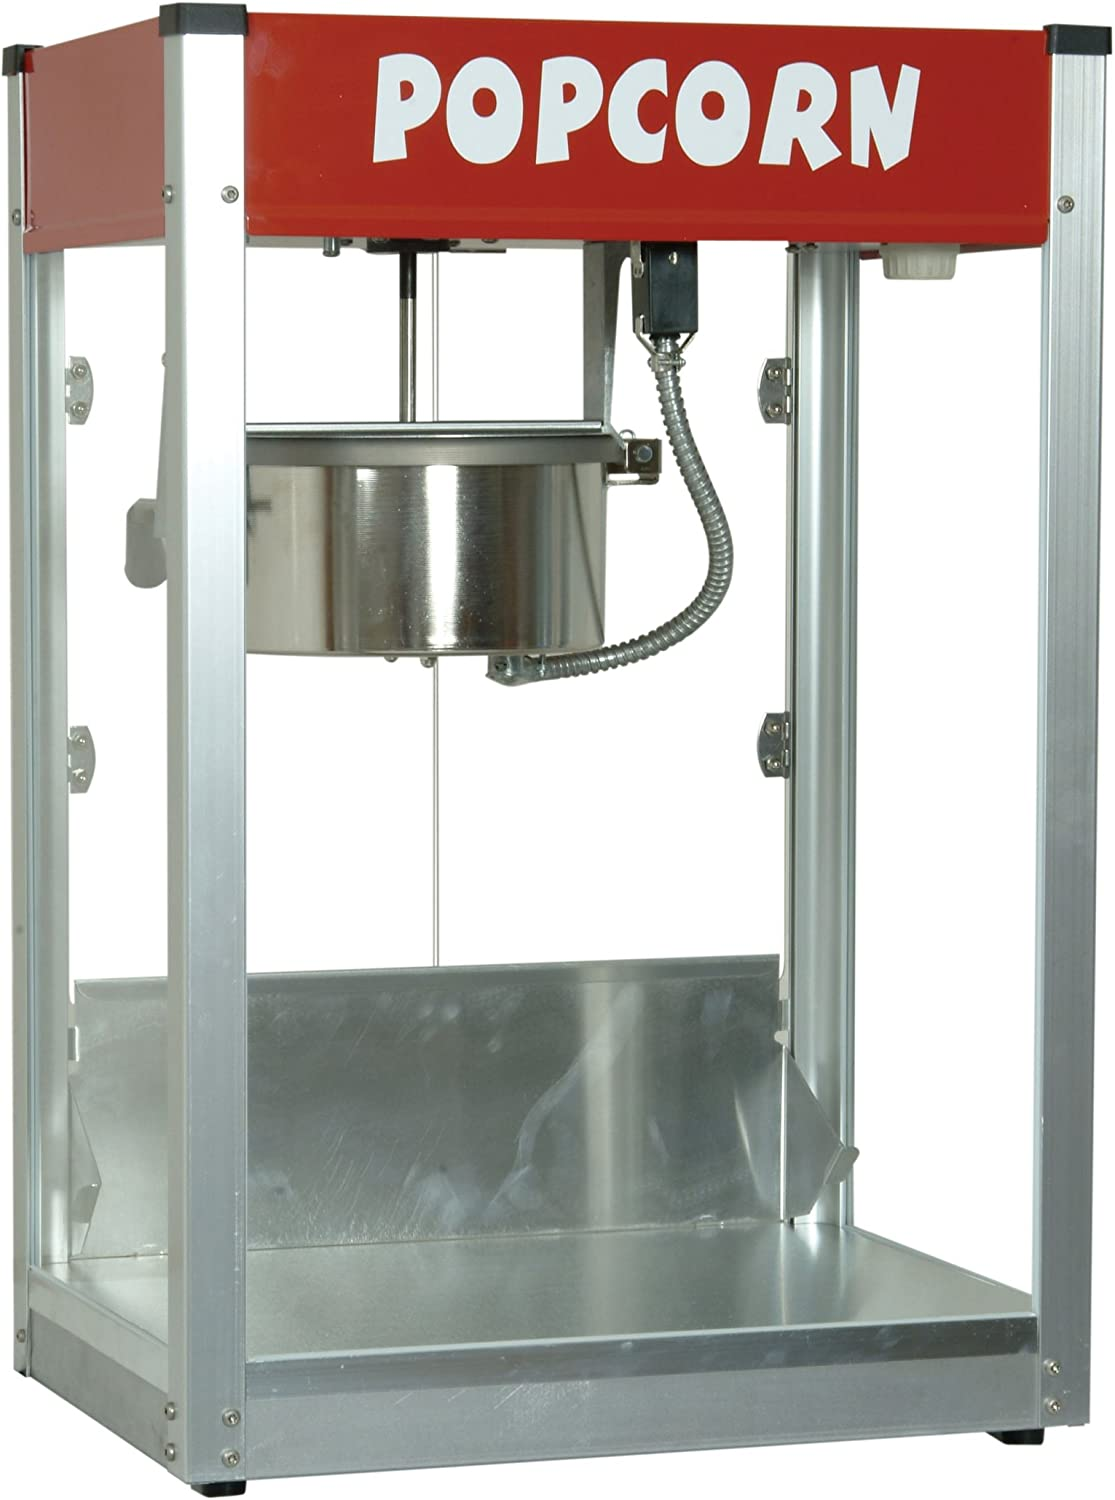 Paragon – Manufactured Fun Thrifty Pop Pop 8 Ounce Popcorn Machine for Professional Concessionaires Requiring Commercial Quality High Output Popcorn Equipment